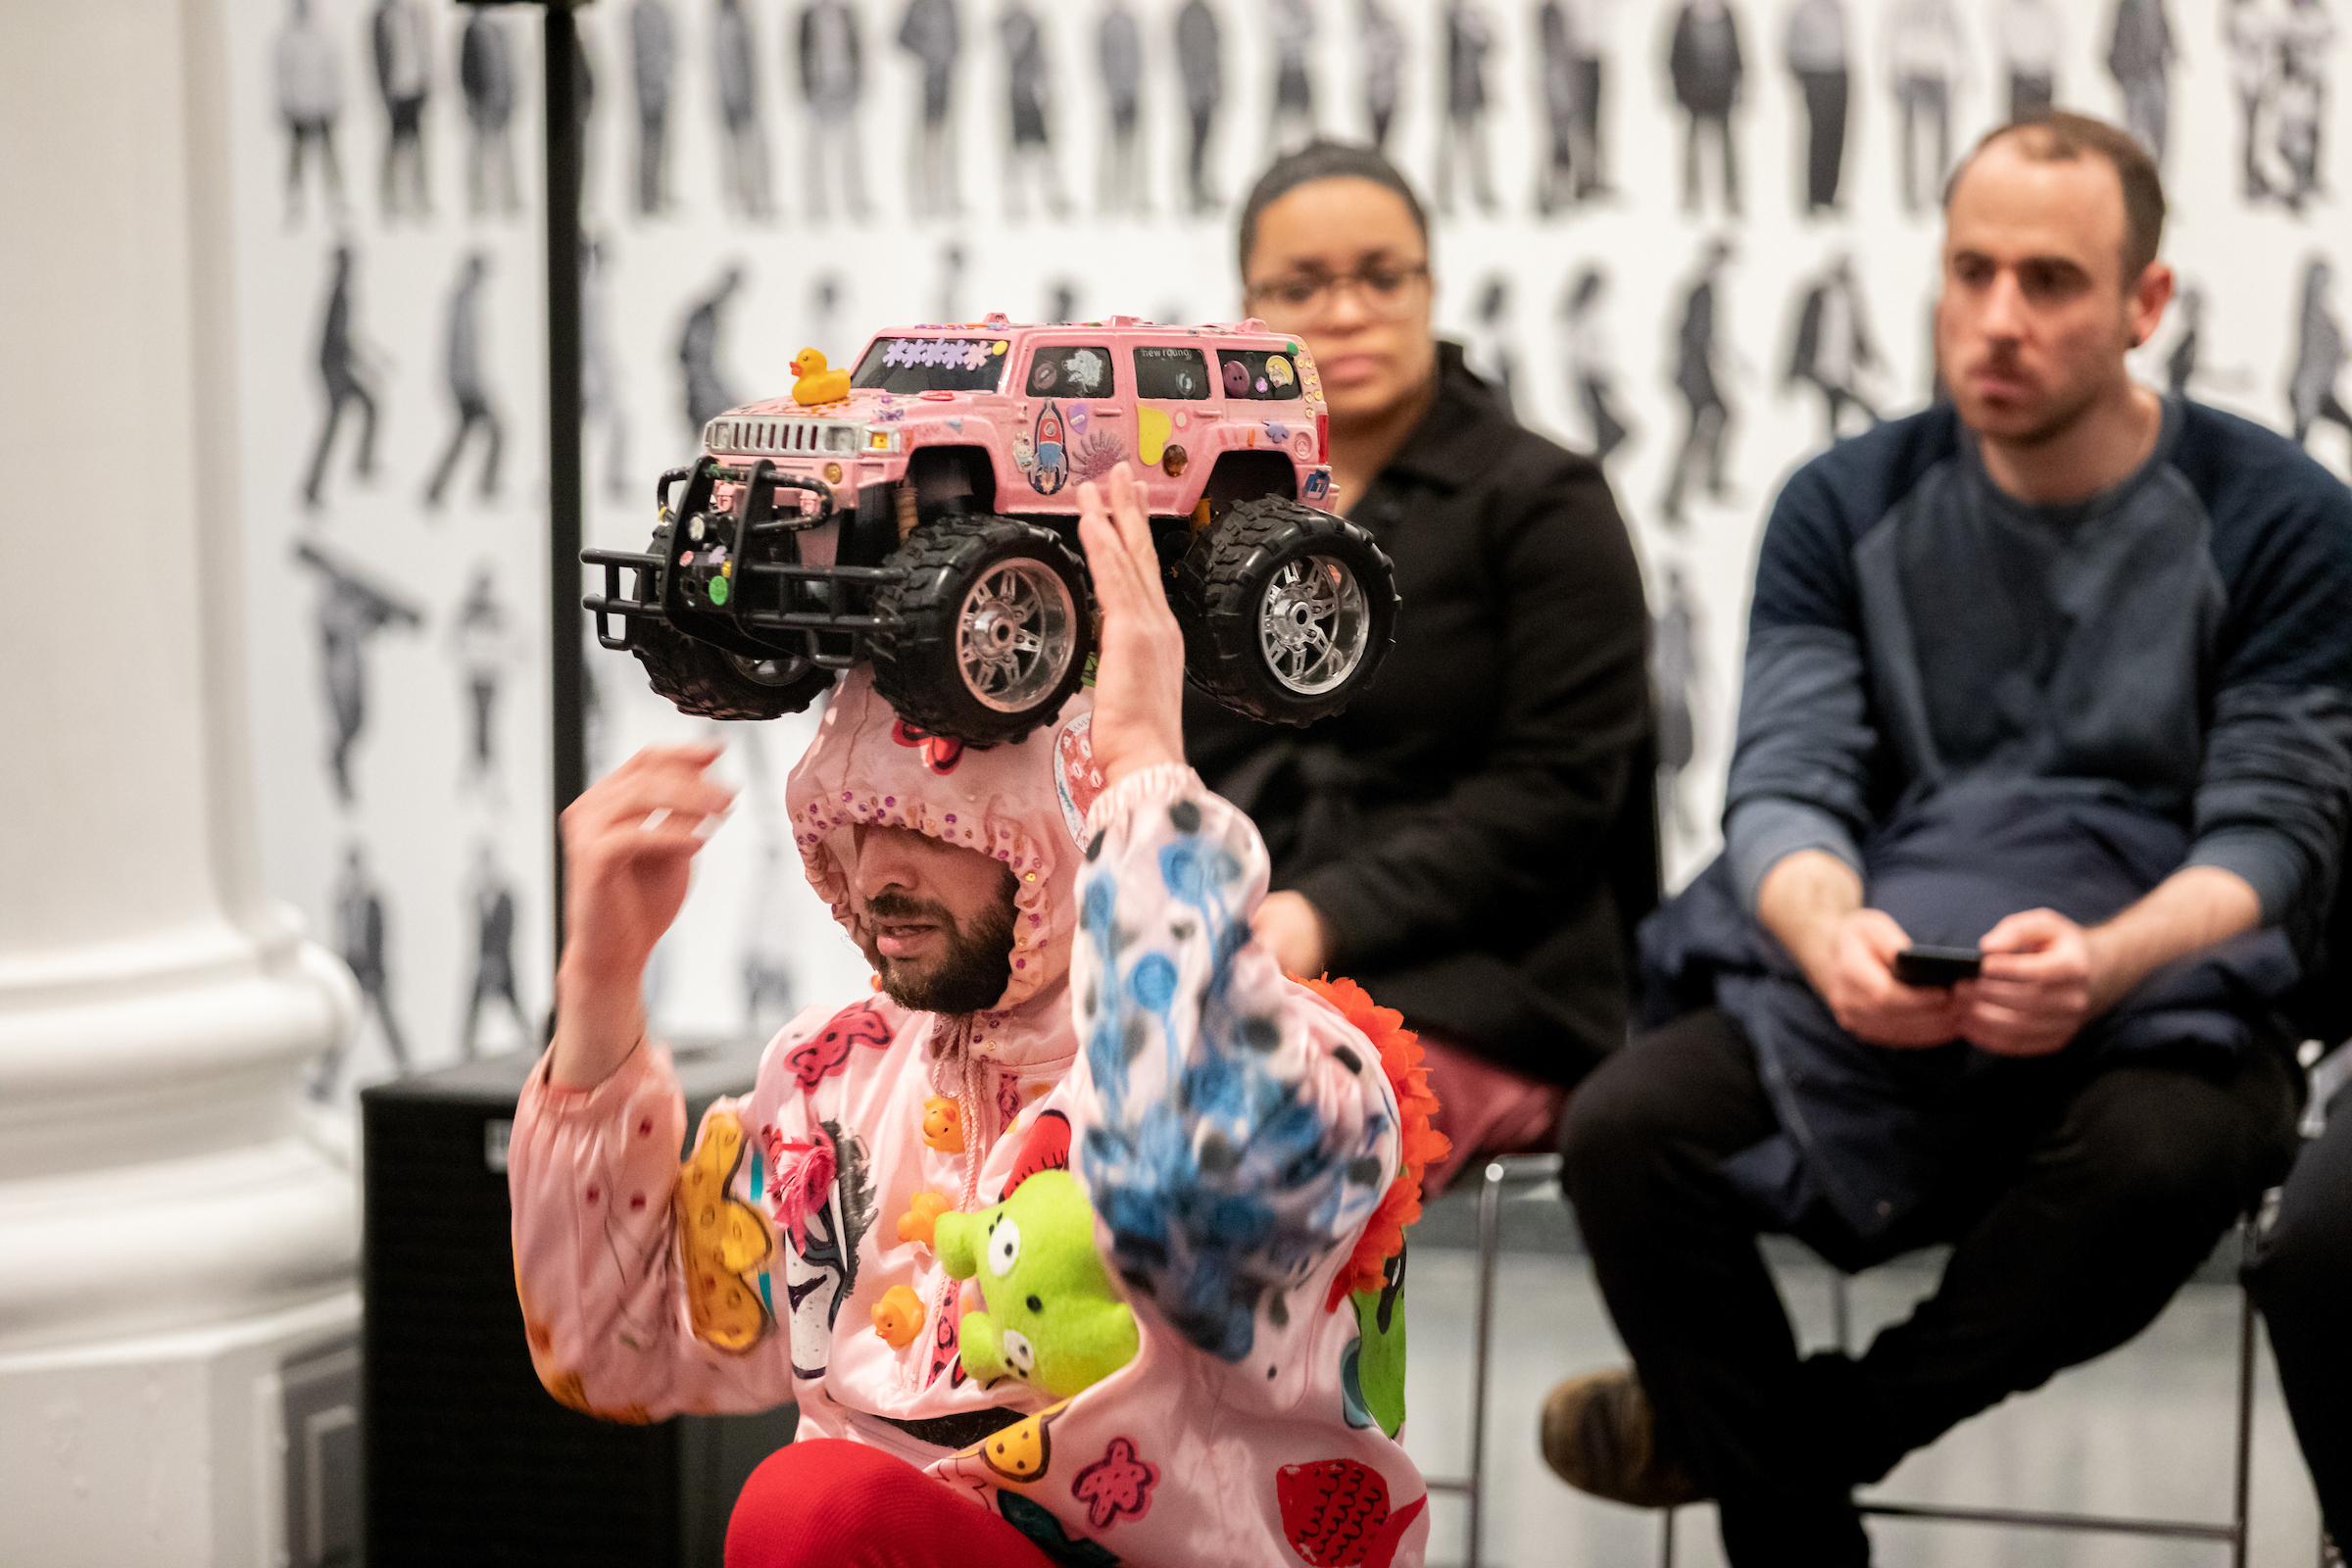 I am wearing the pink remote control car on my head as a crown. I've become a mythological creature. In the background the audience admires my kingdom with bewilderment.